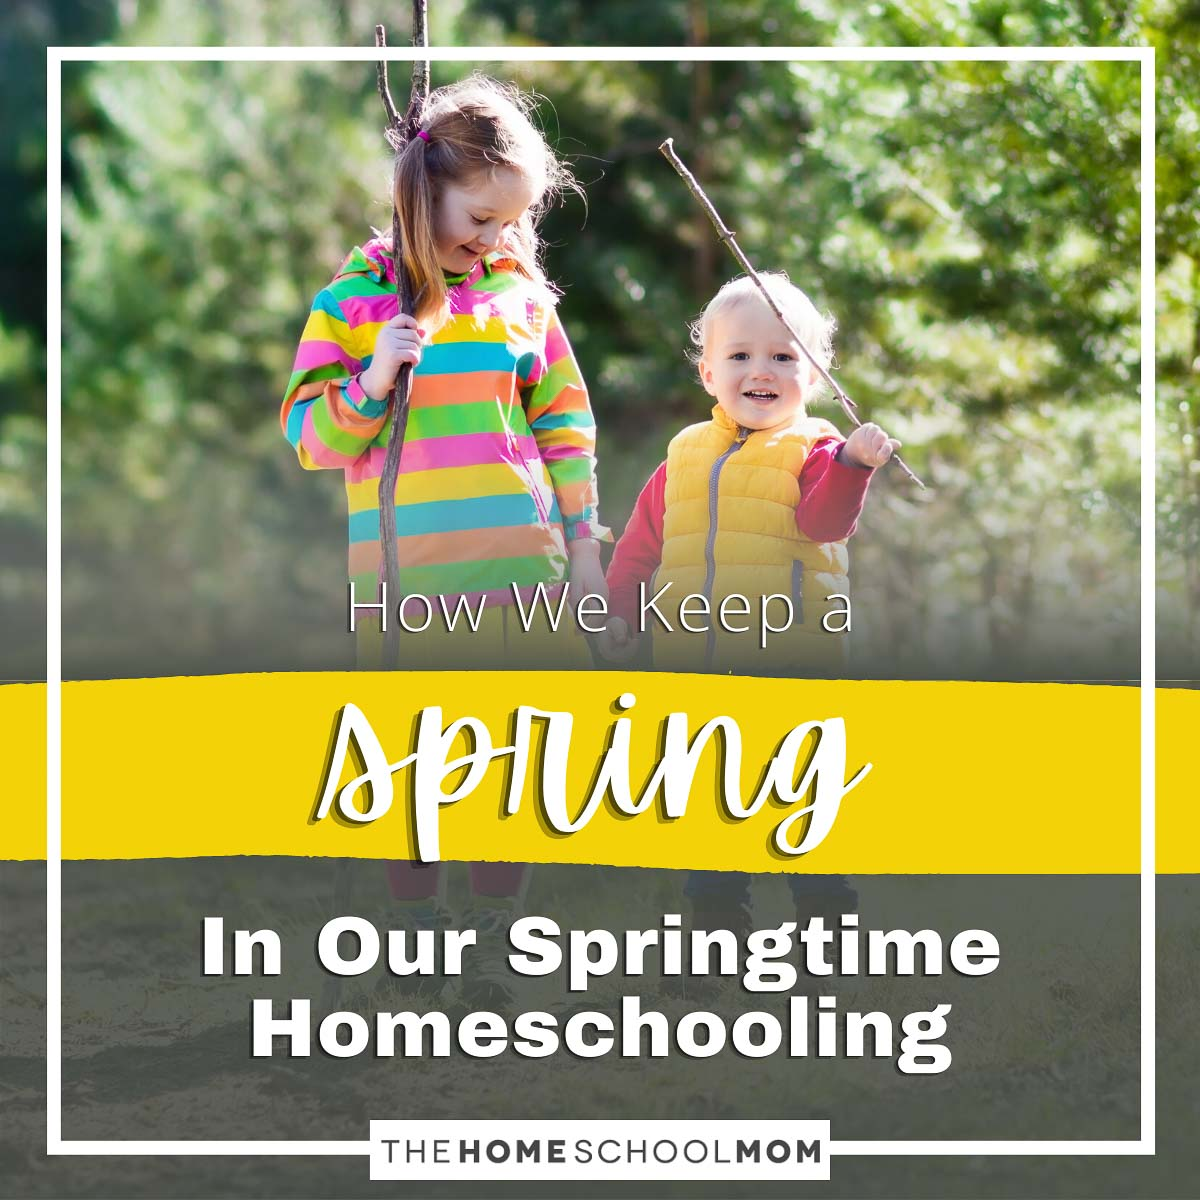 How We Keep a Spring in Our Springtime Homeschooling